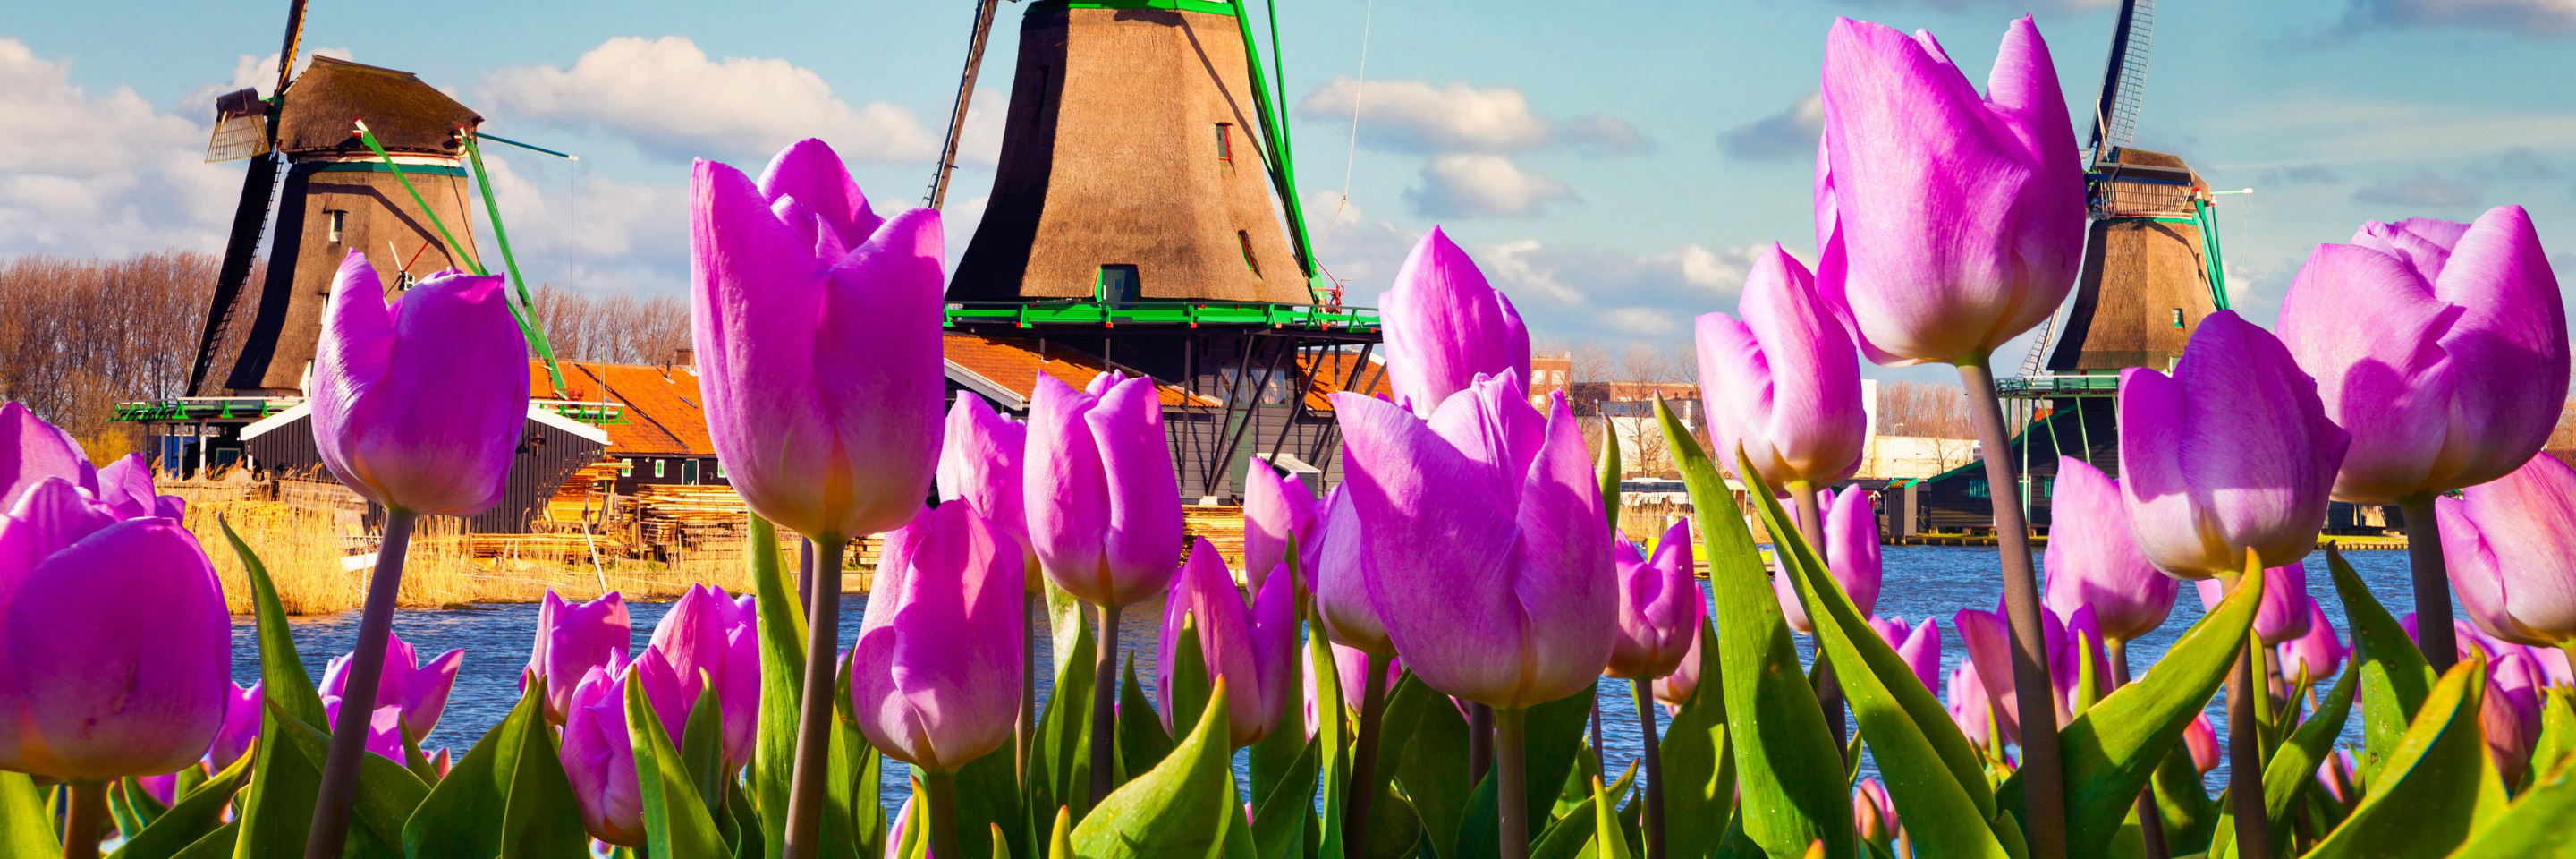 Tulip Time Cruise with 1 Night in Amsterdam for Beer   Enthusiasts